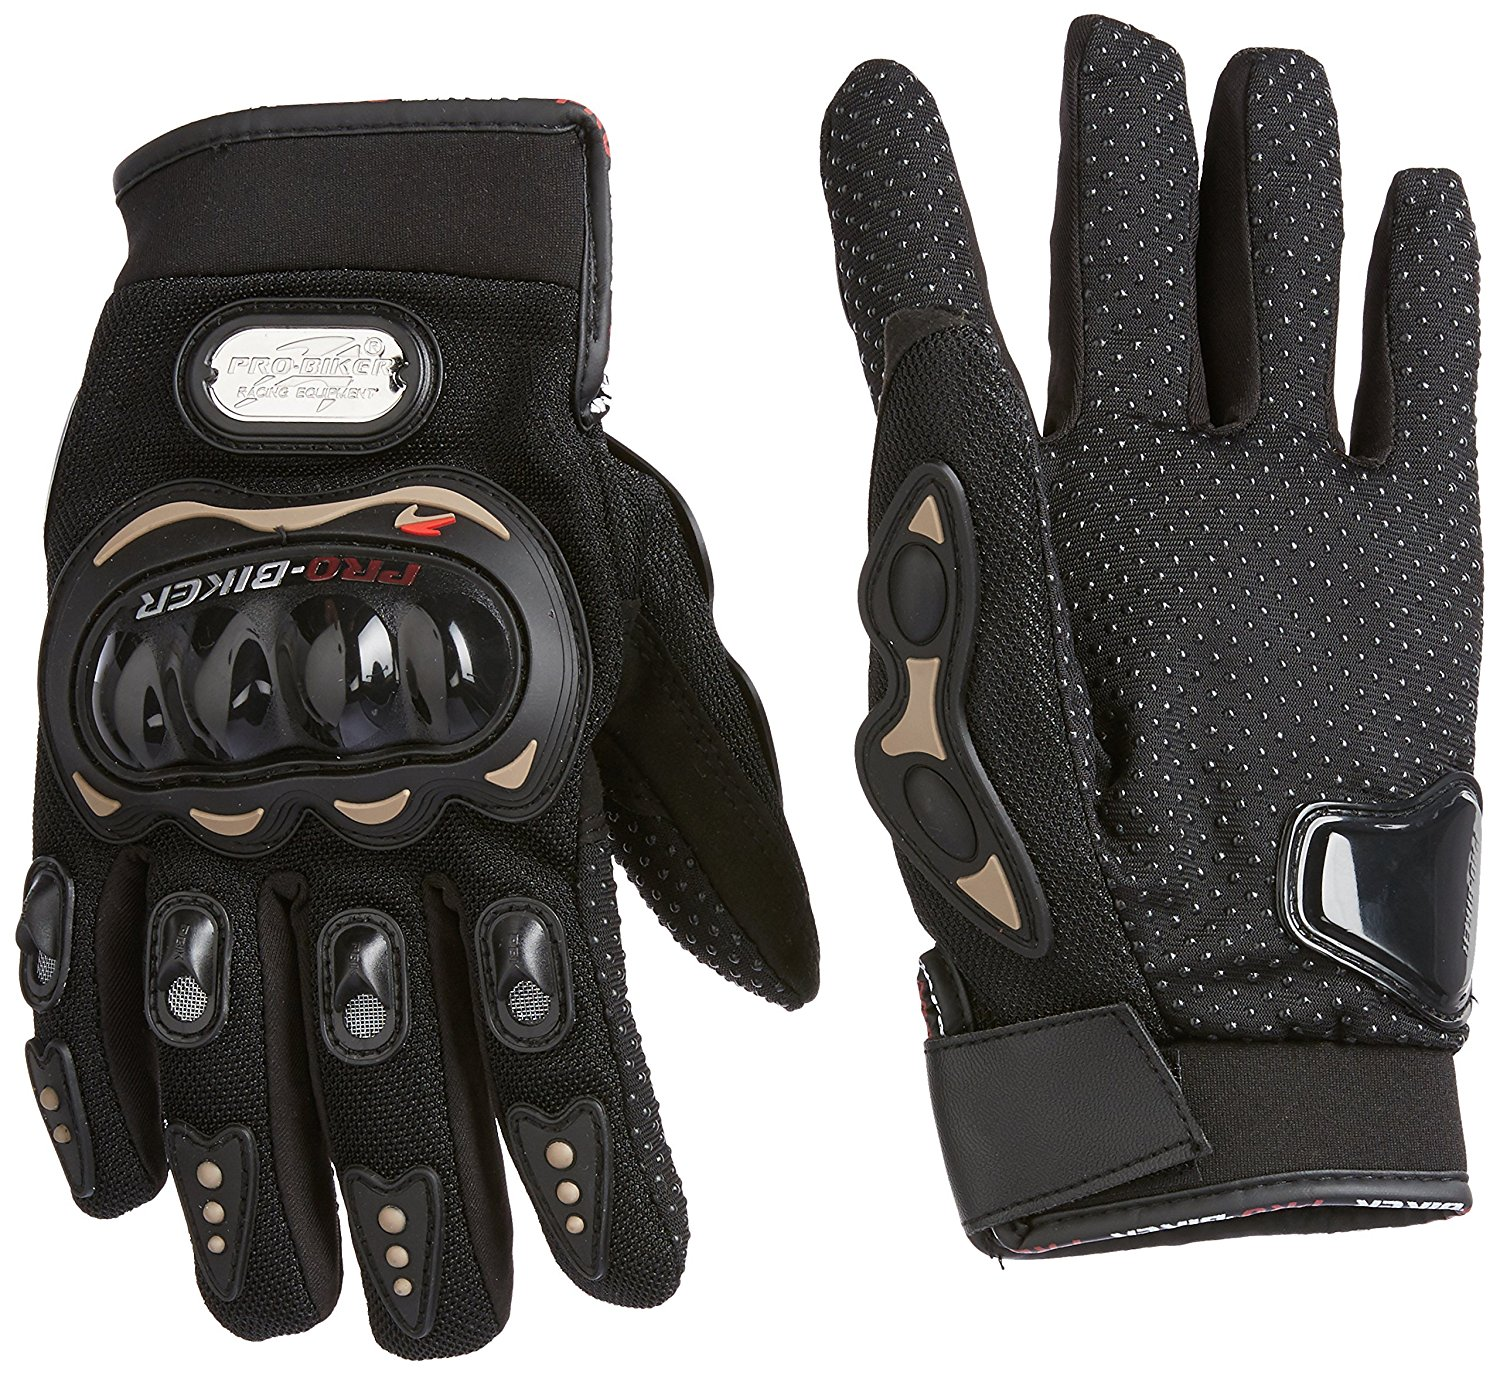 Best 5 Riding Gloves To Buy In 2019 - Product Scan-5933